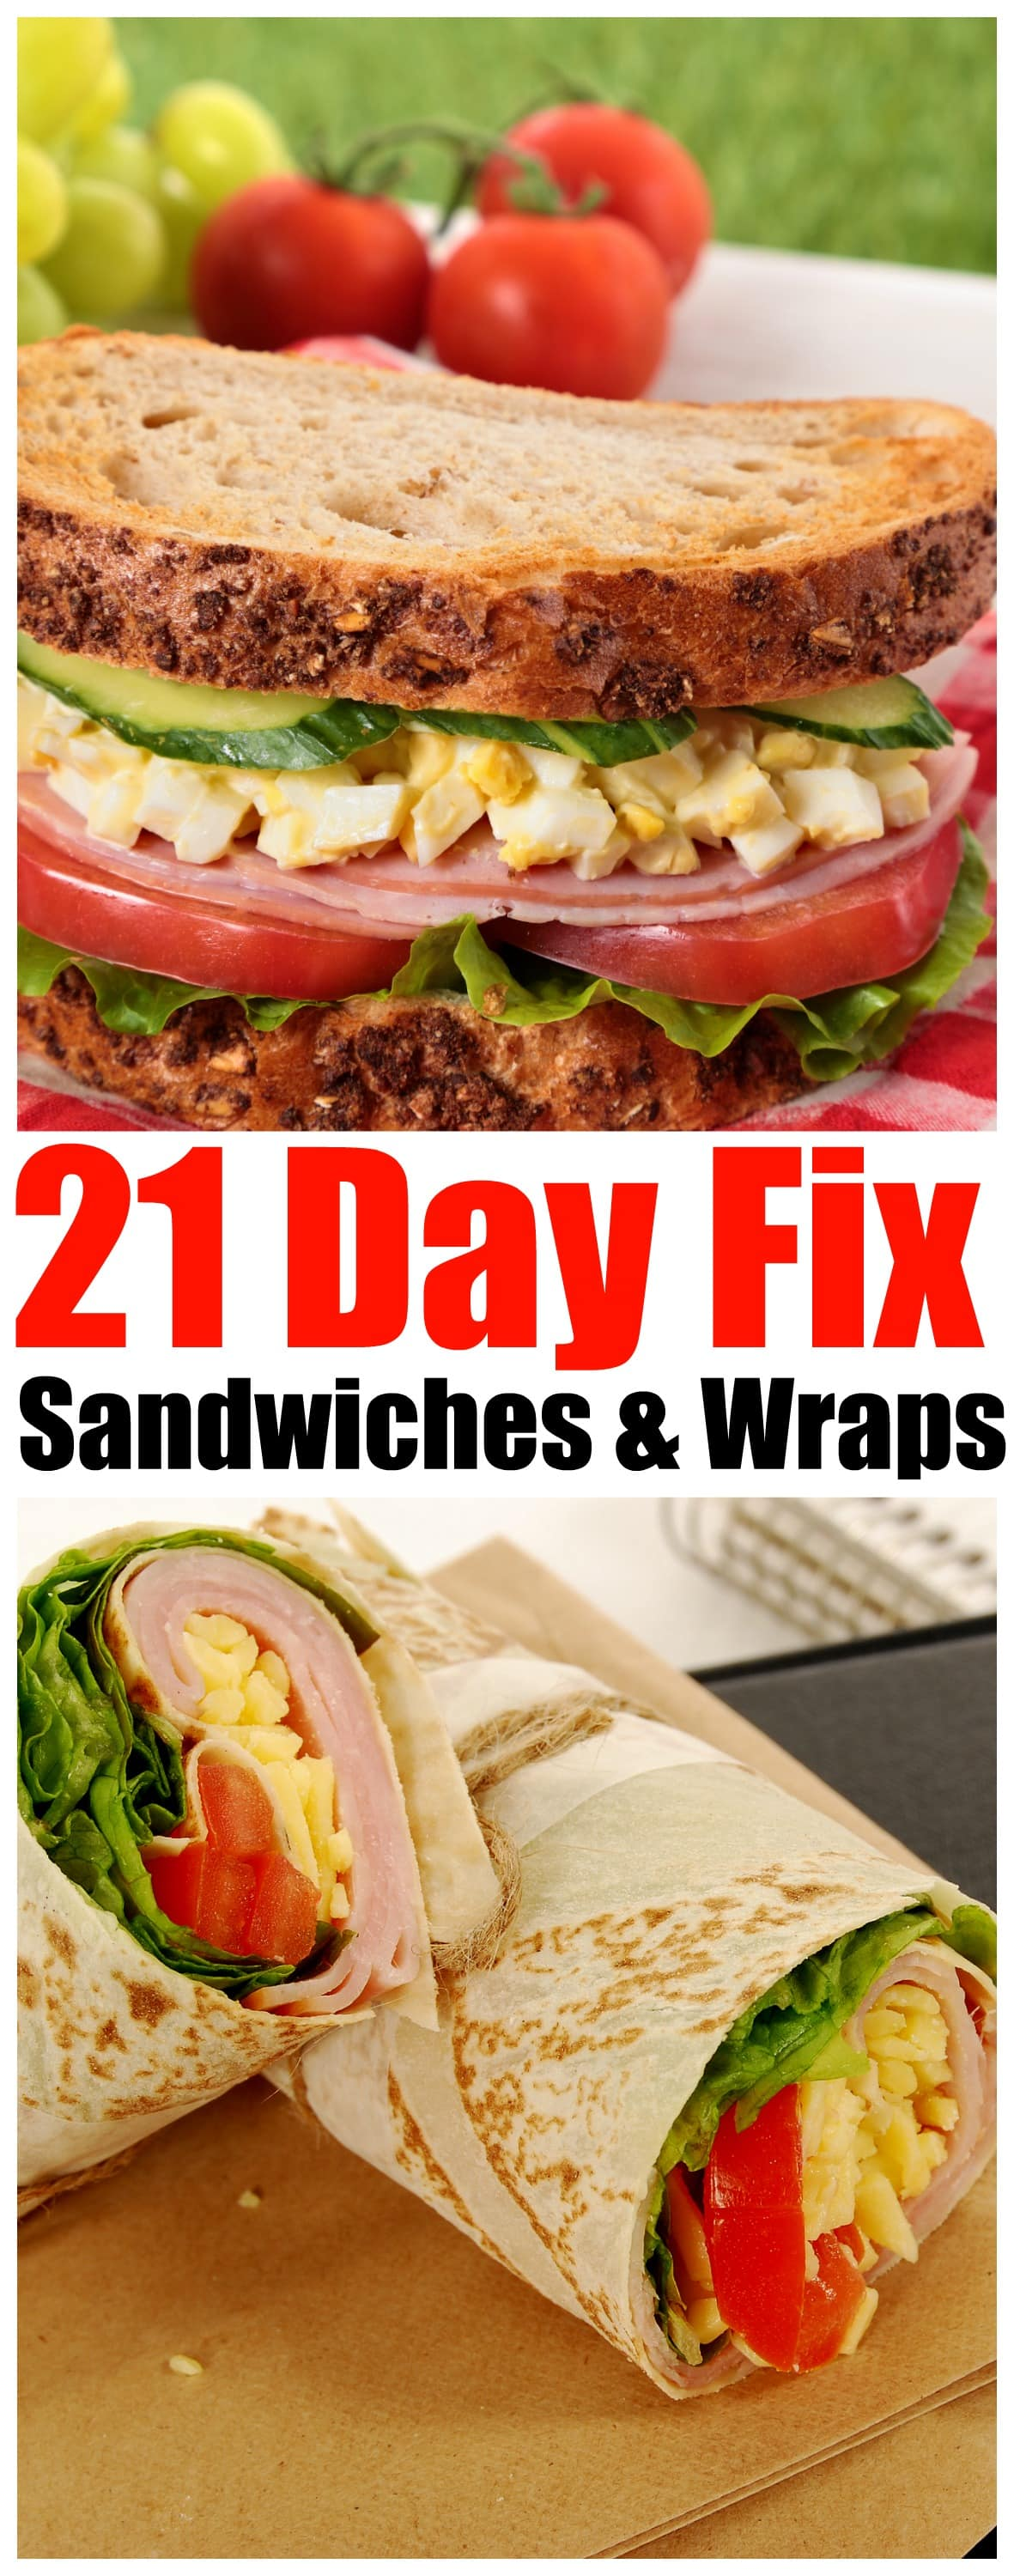 21 Day Fix sandwiches and wraps - Forget Takeout! Eat Easy and Delicious 21-Day Fix Sandwiches that you can makeEvery Day - dont be tempted to fall off the21-Day Fix Challenge